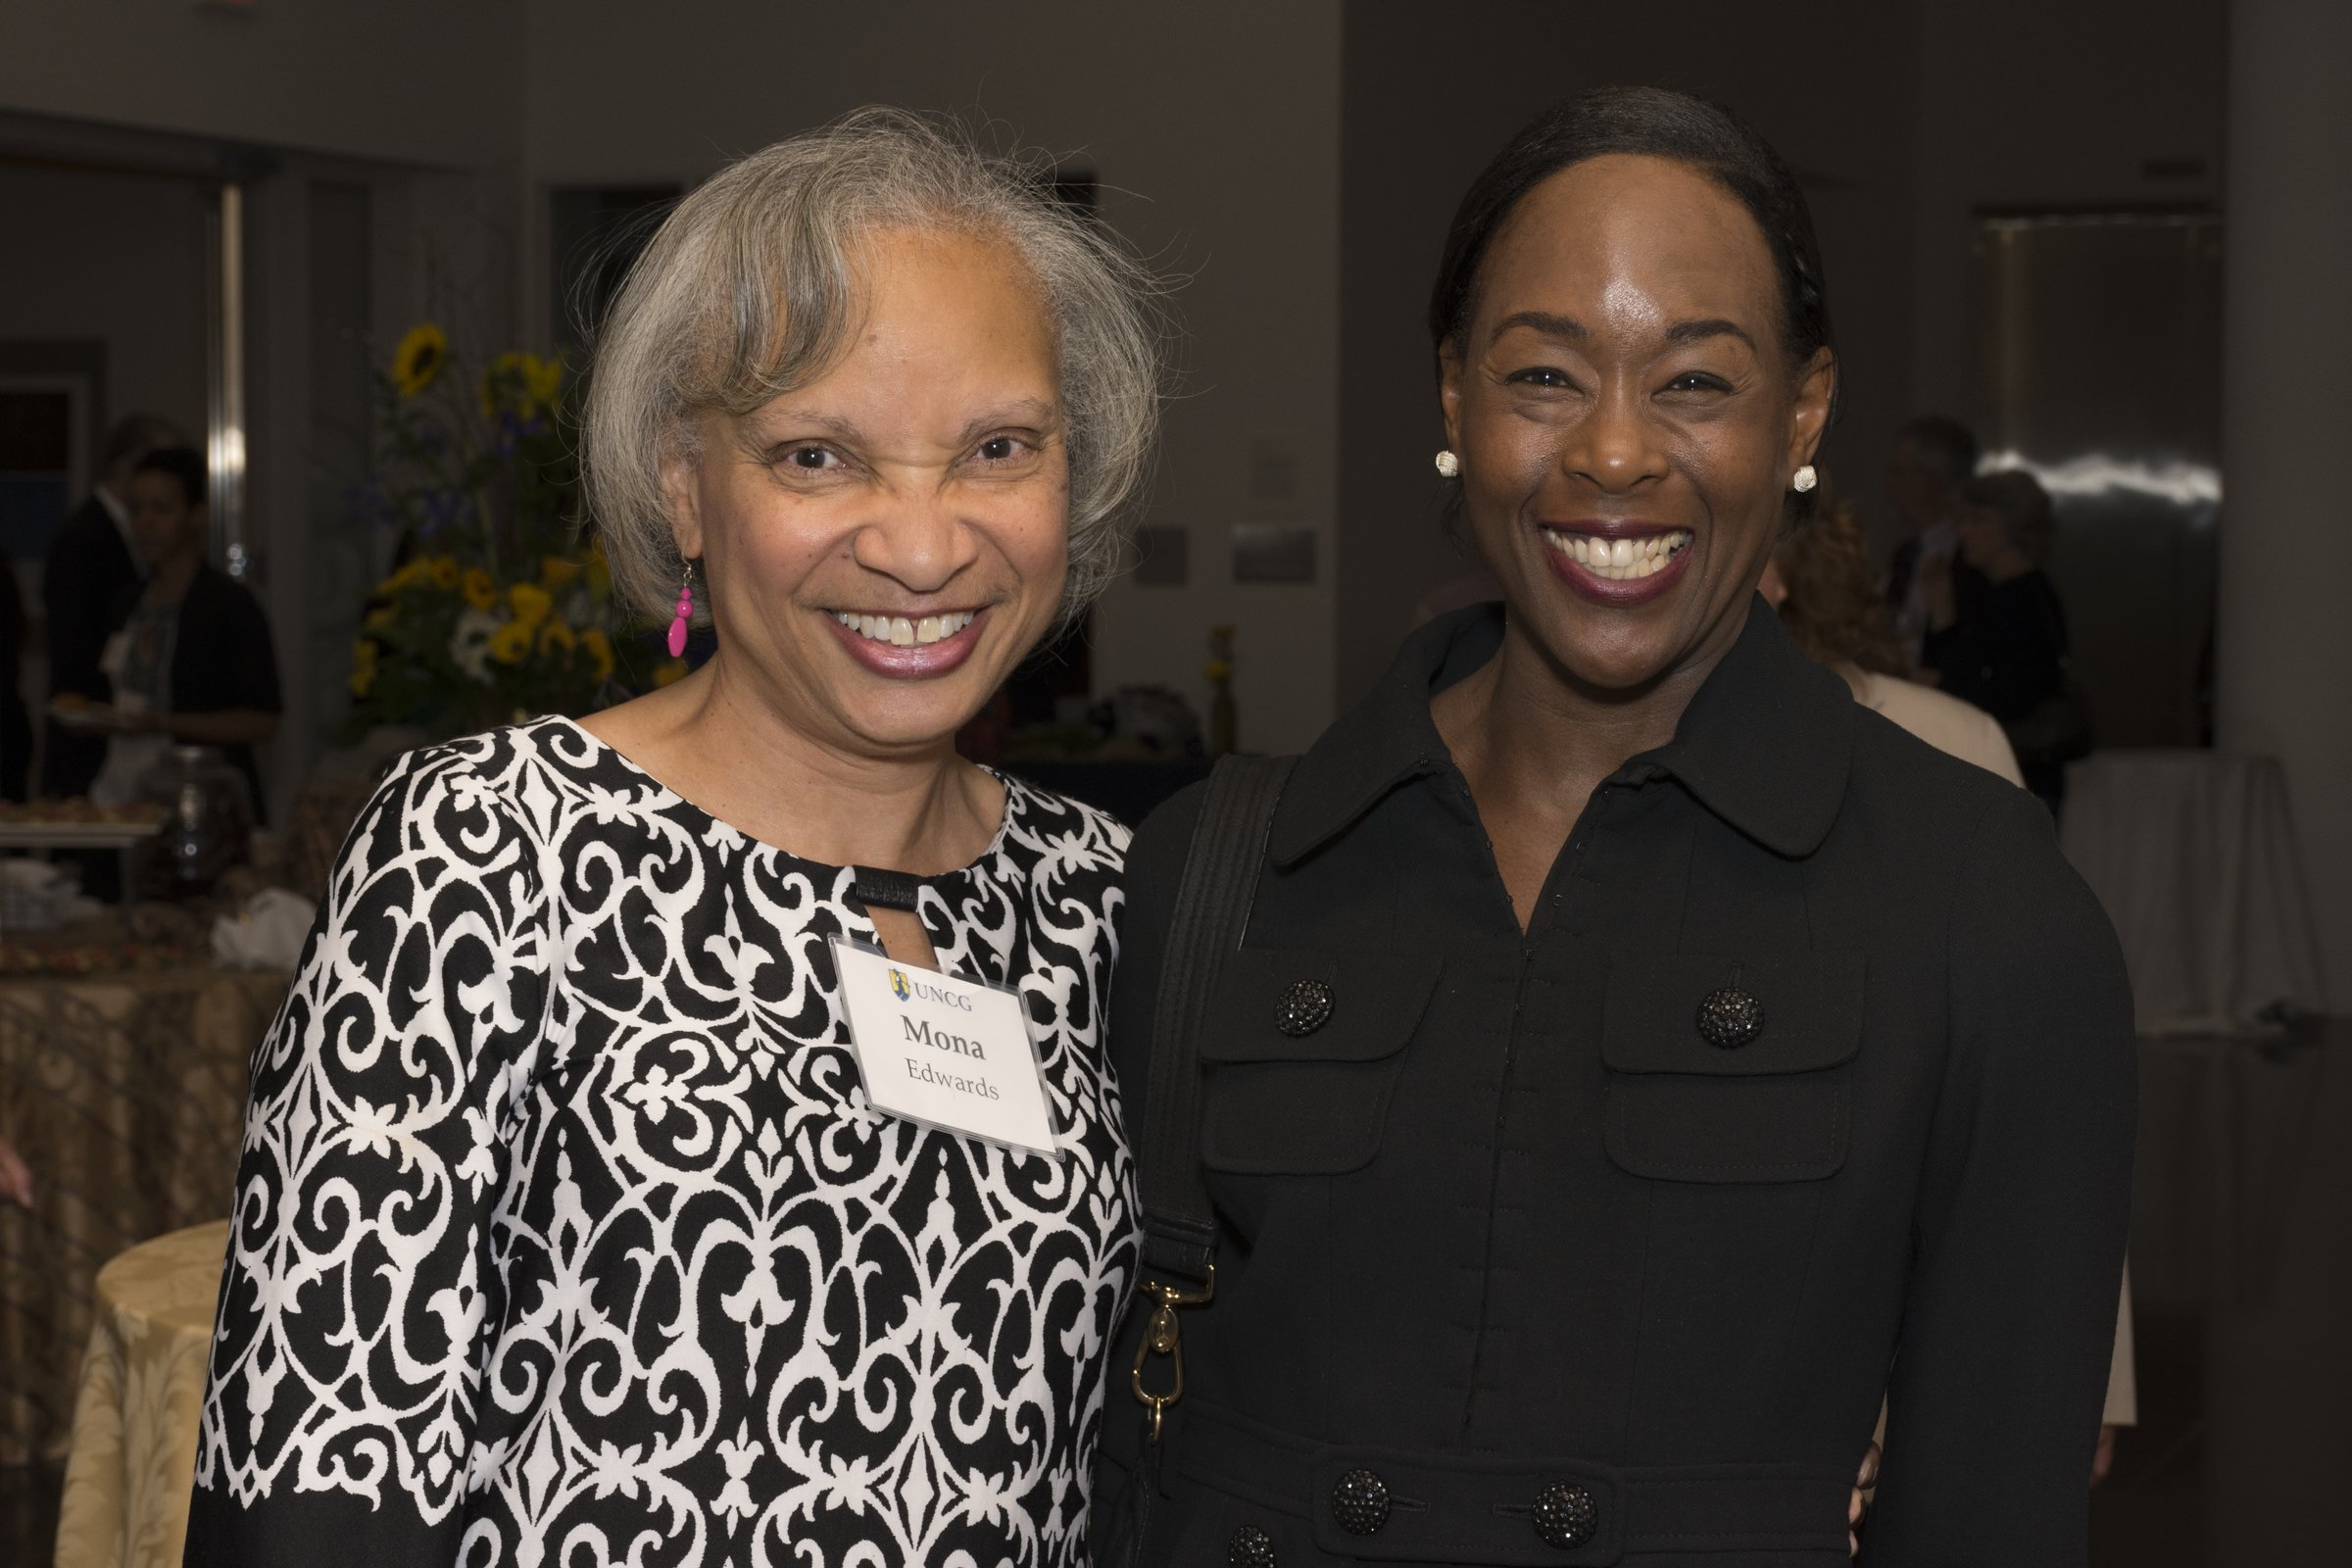 Mona Edwards with Margot Shetterly